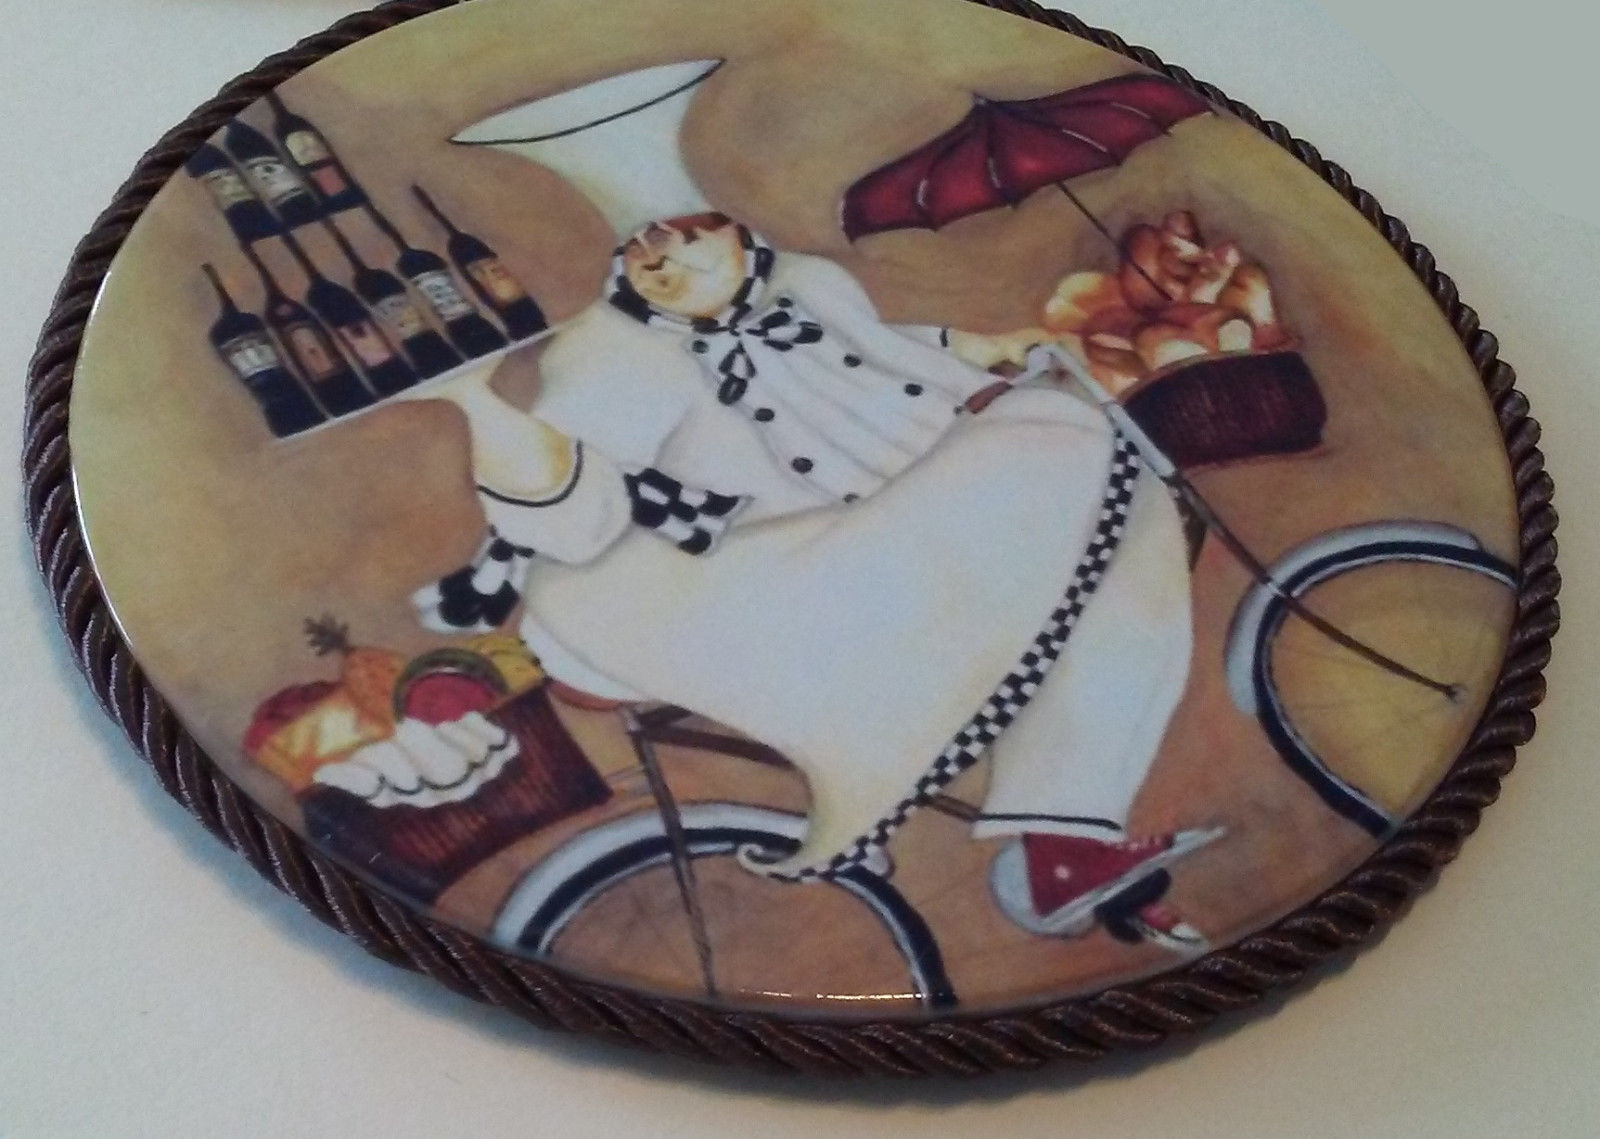 FAT CHEF PLAQUE TRIVET Wall Hanging Hot Plate Wine Cook on Bicycle NEW